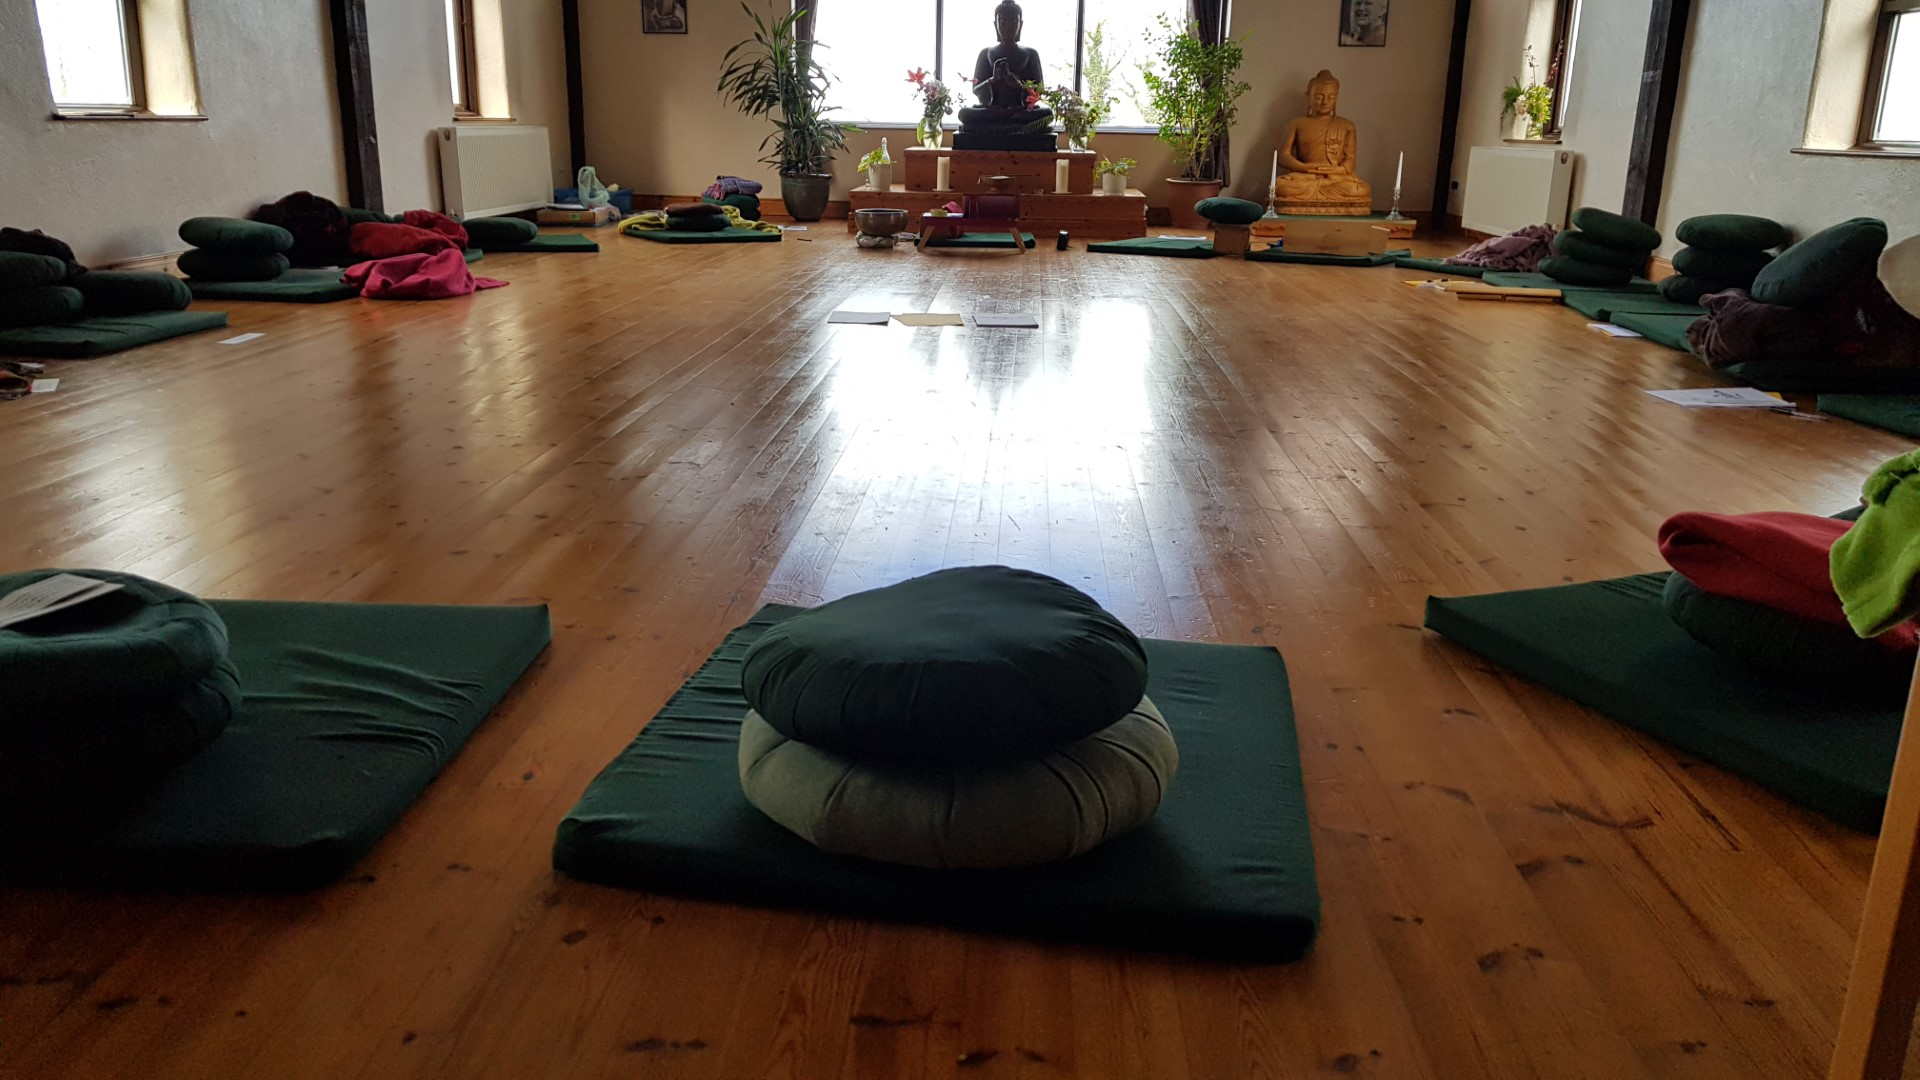 Fifth Precept Fellowship - Meditation and Mindfulness for Recovery from alcohol drugs and other addictions and compulsions - Sit and Share Meeting